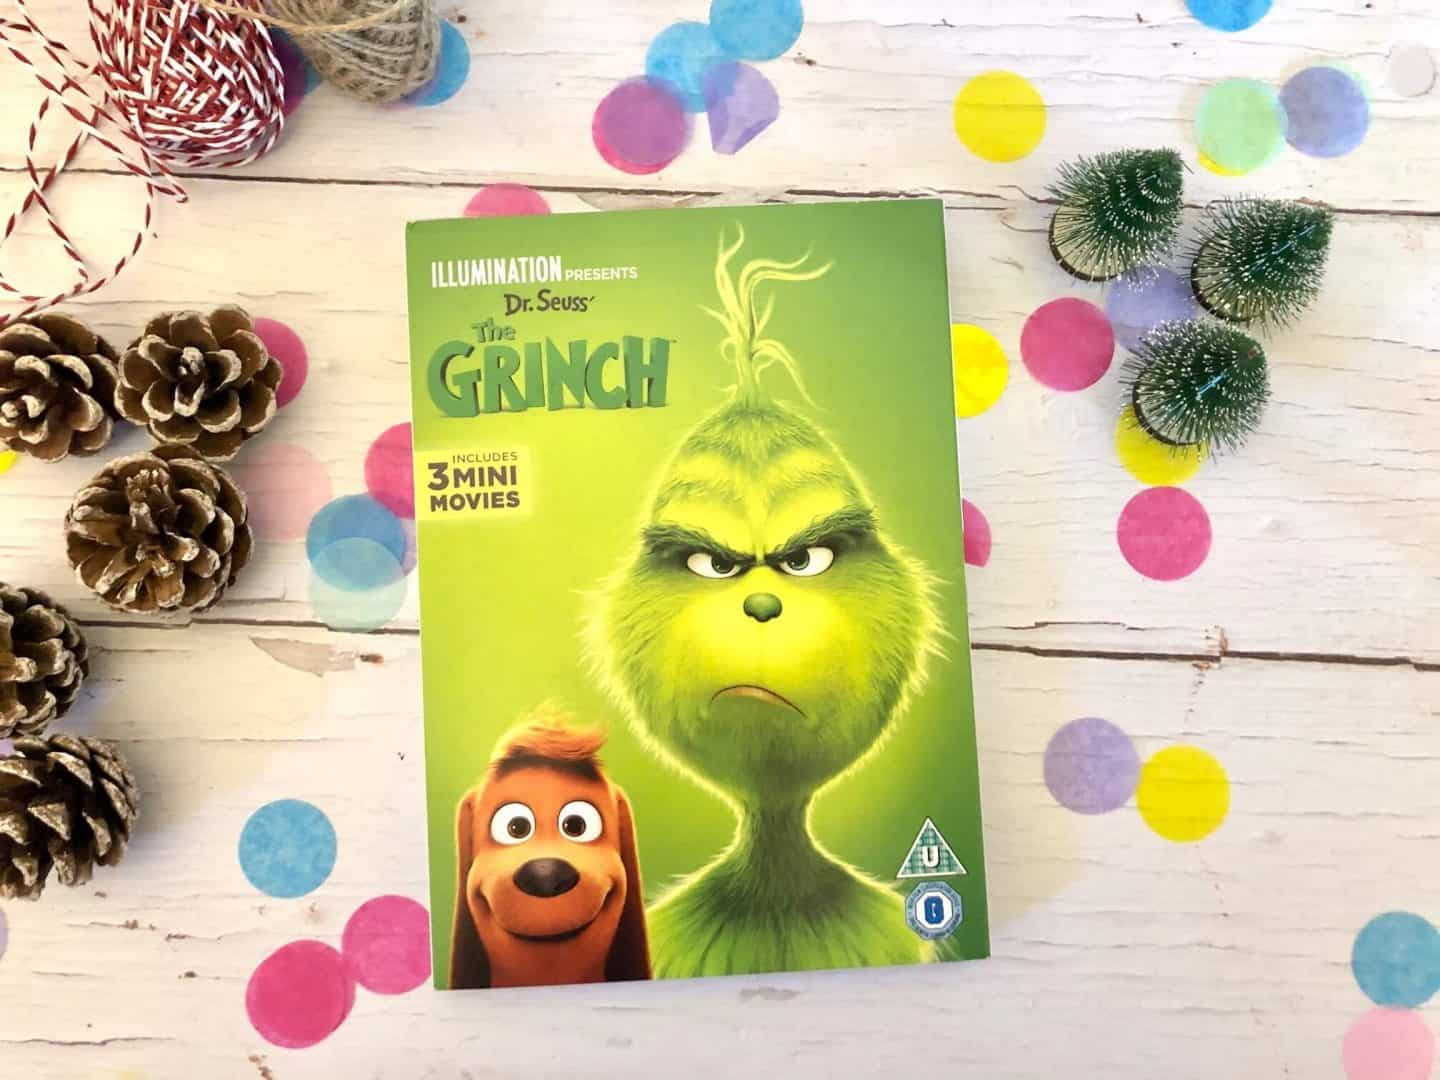 Dr Seuss' The Grinch DVD